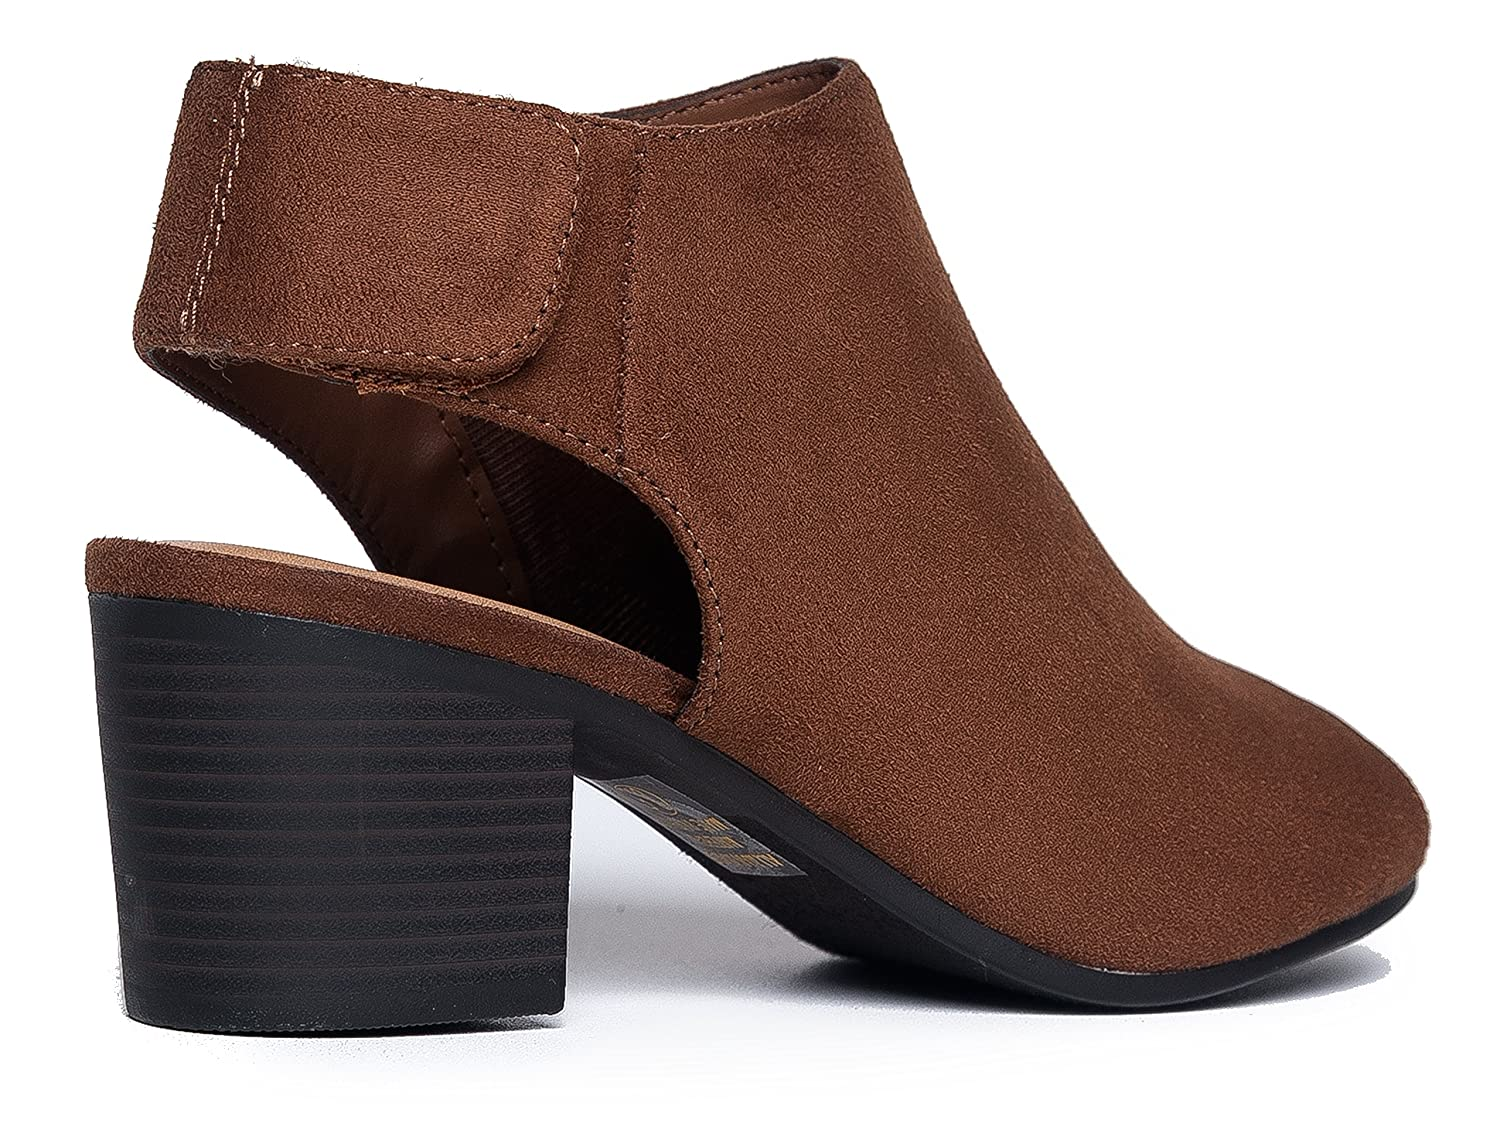 1d00ad2e6e7 Amazon.com  J. Adams Harlyn Ankle Bootie - Adjustable Band Peep Toe Low  Stacked Heel Boots  Shoes